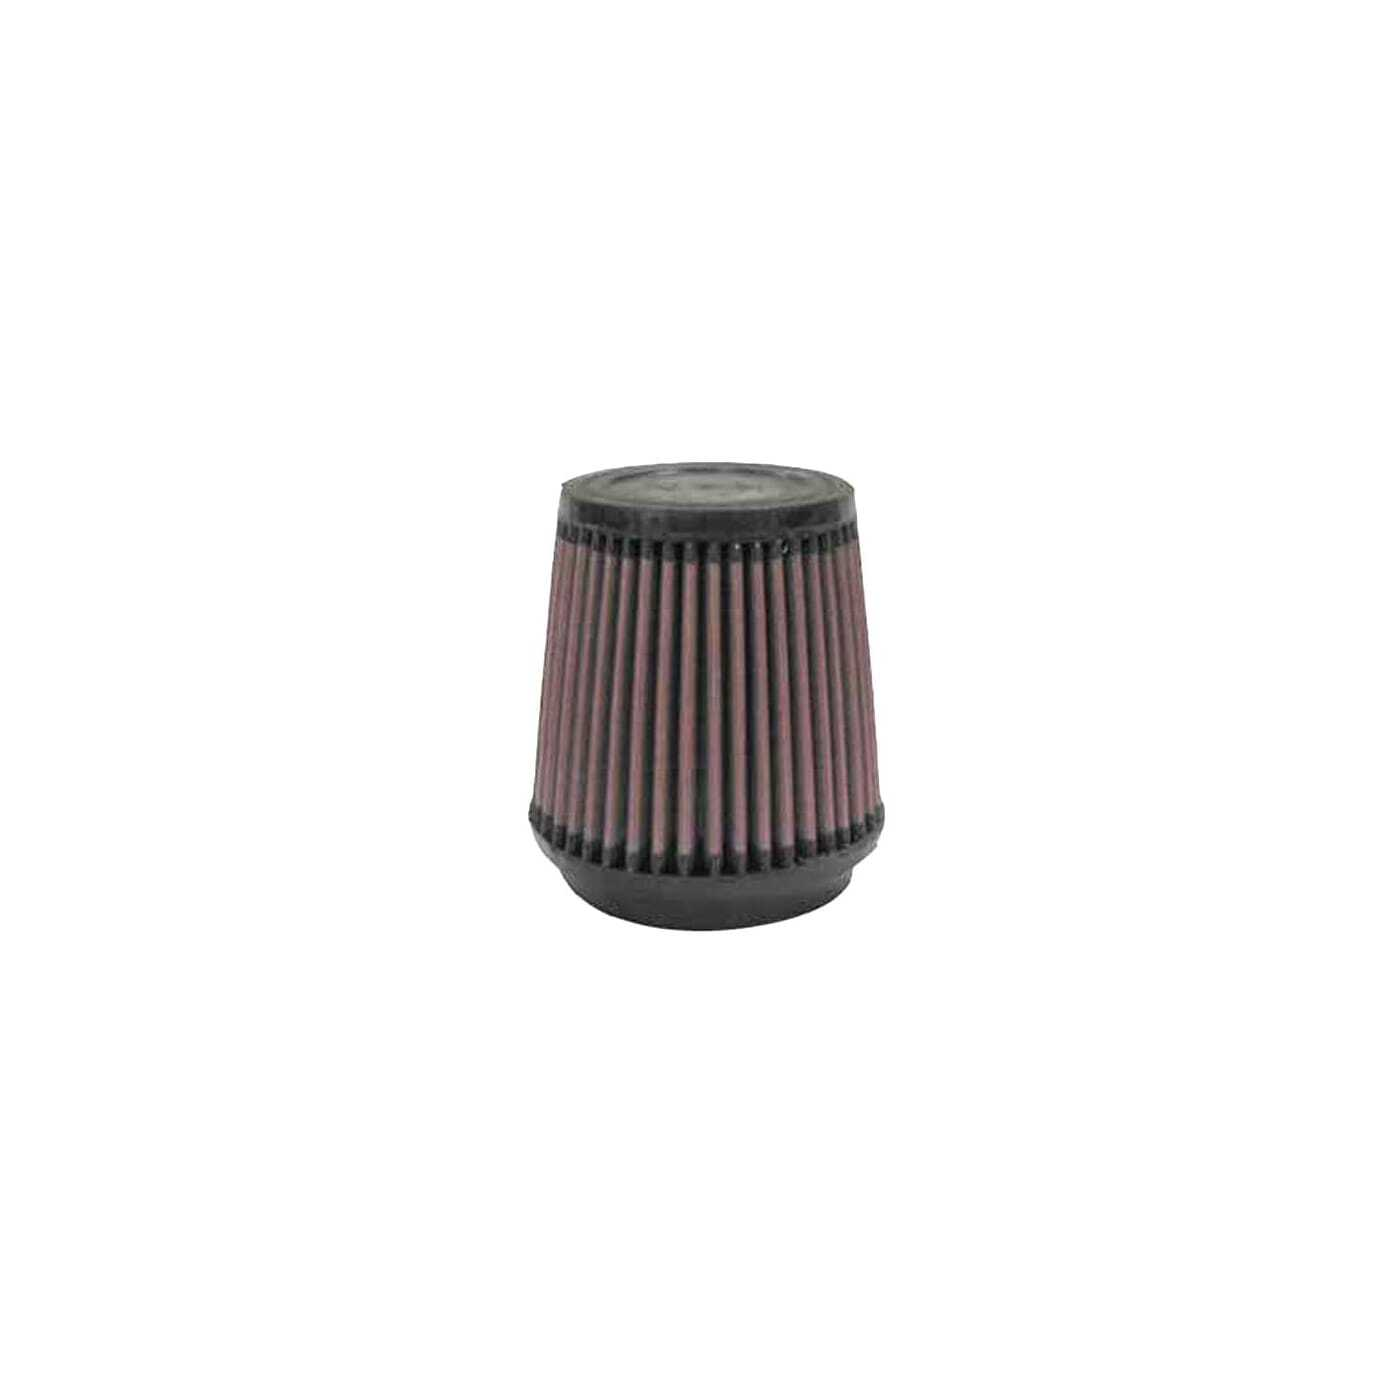 "Universal Clamp-On Air Filter - 3.5"" Inlet, 4.625"" Base, 4.5"" Height"